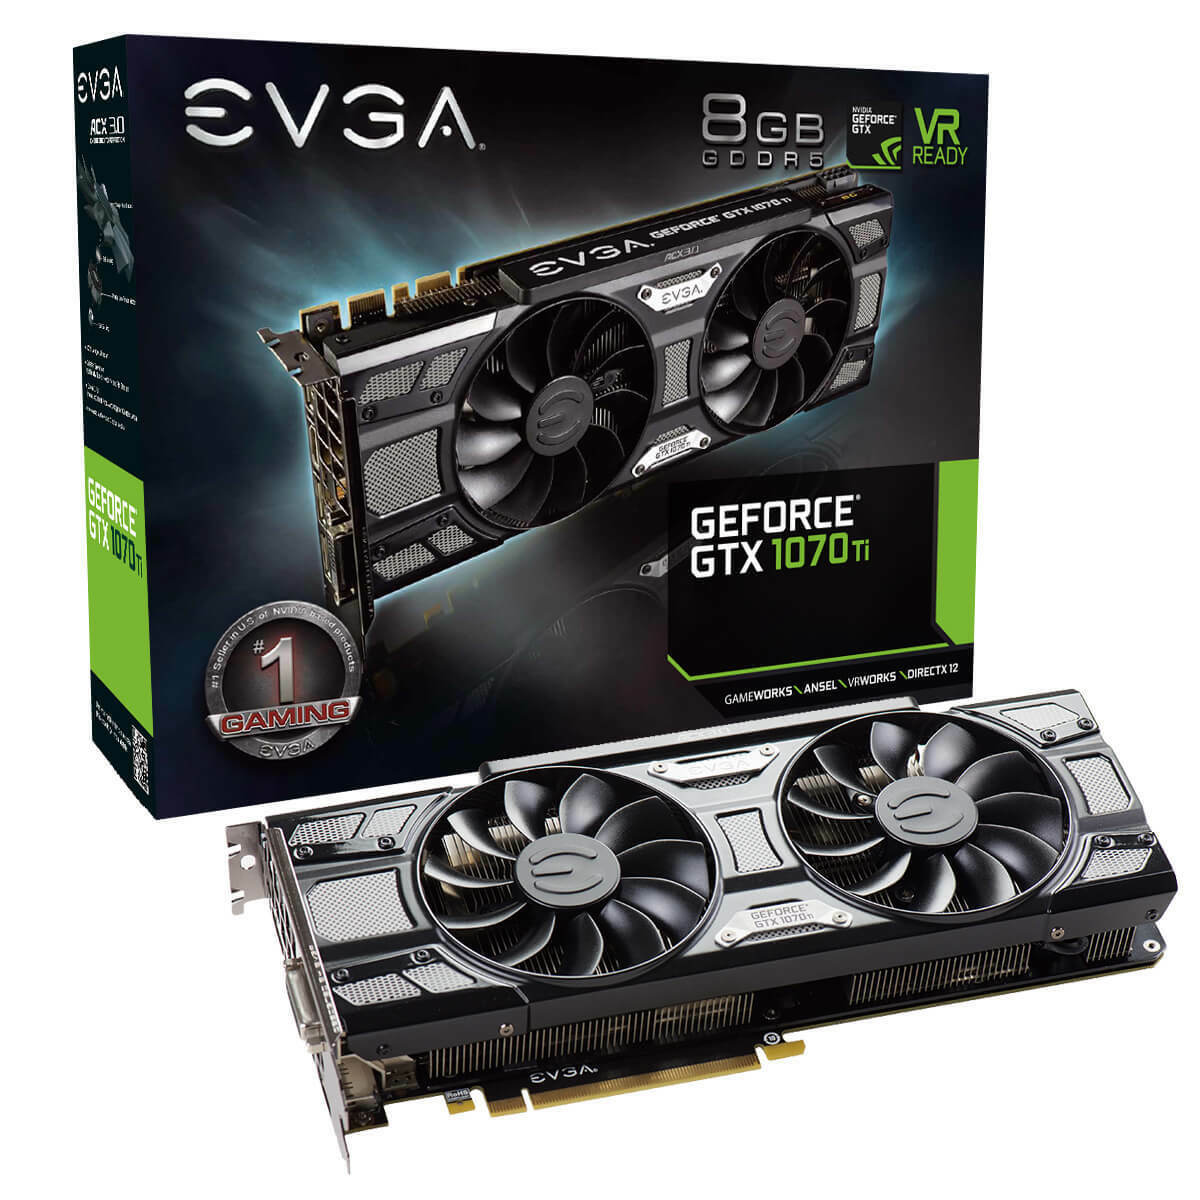 EVGA GeForce GTX 1070 Ti SC GAMING, 8GB GDDR5, Black Edition, 08G-P4-5671-KR